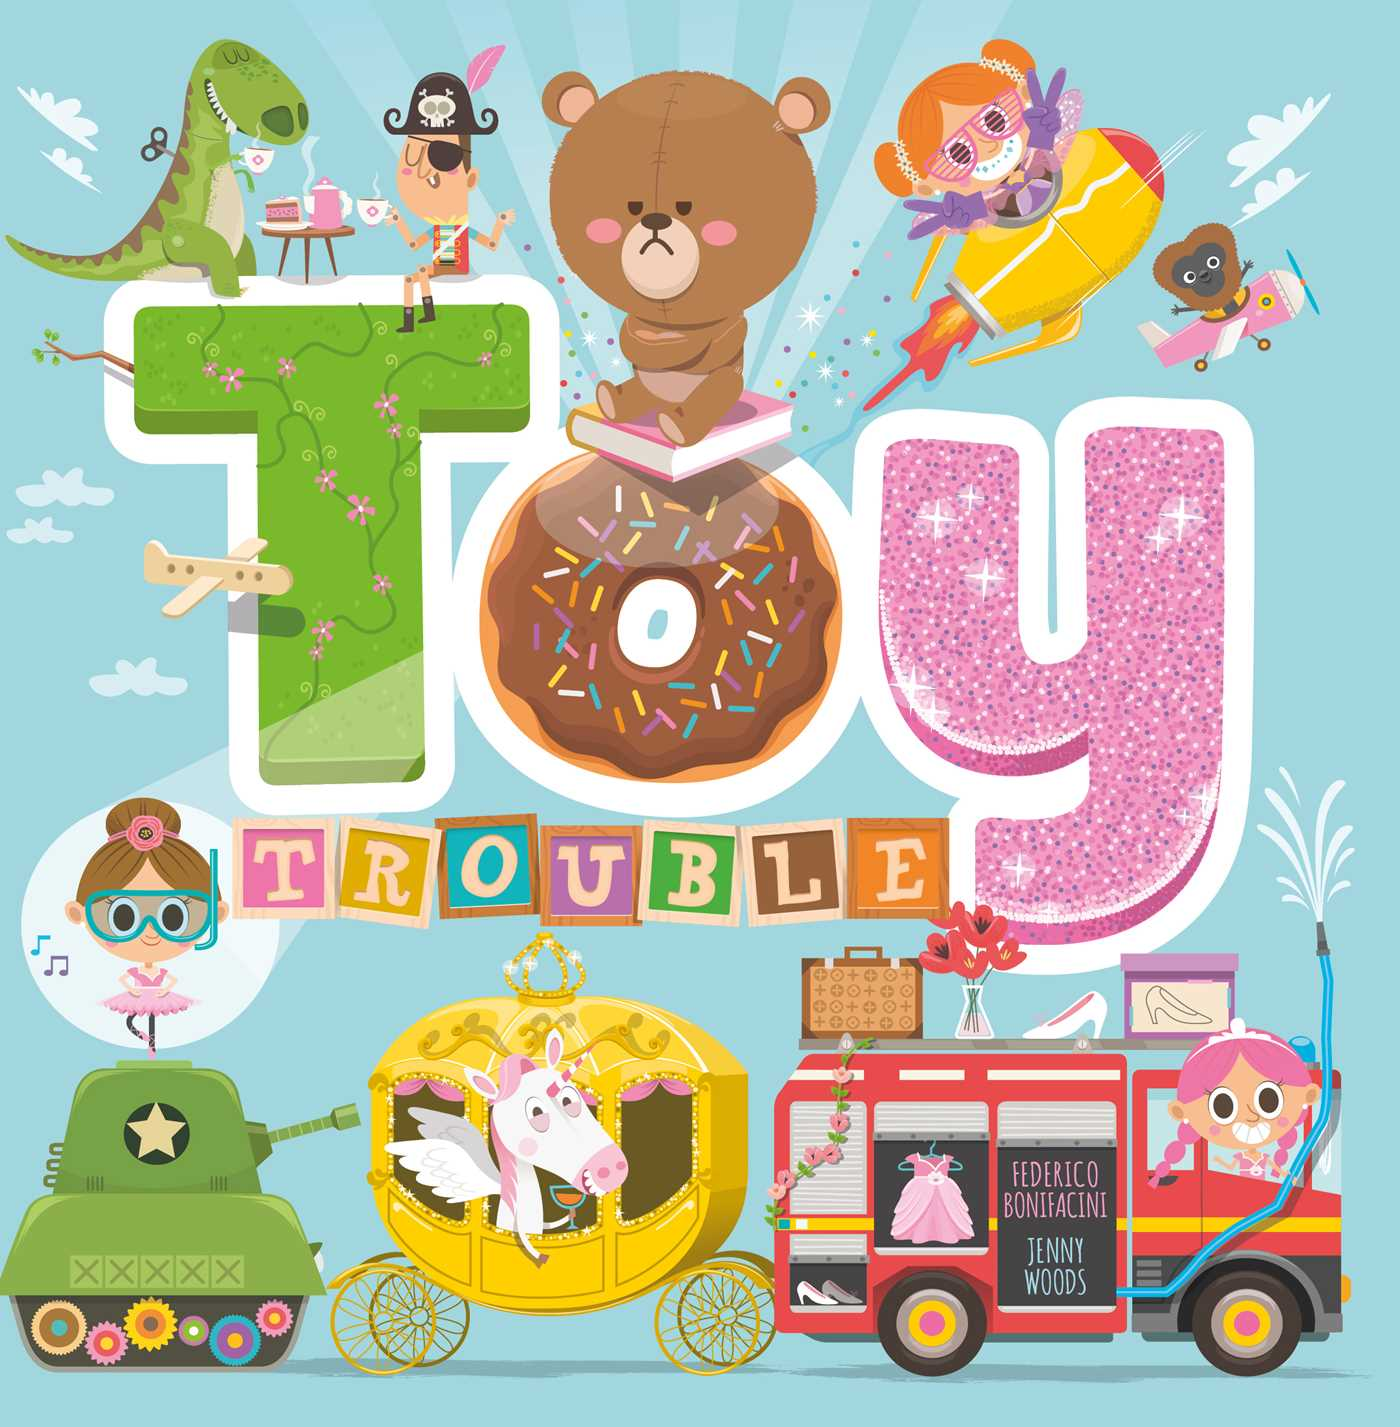 Toy clipart toy book. Trouble by igloobooks official